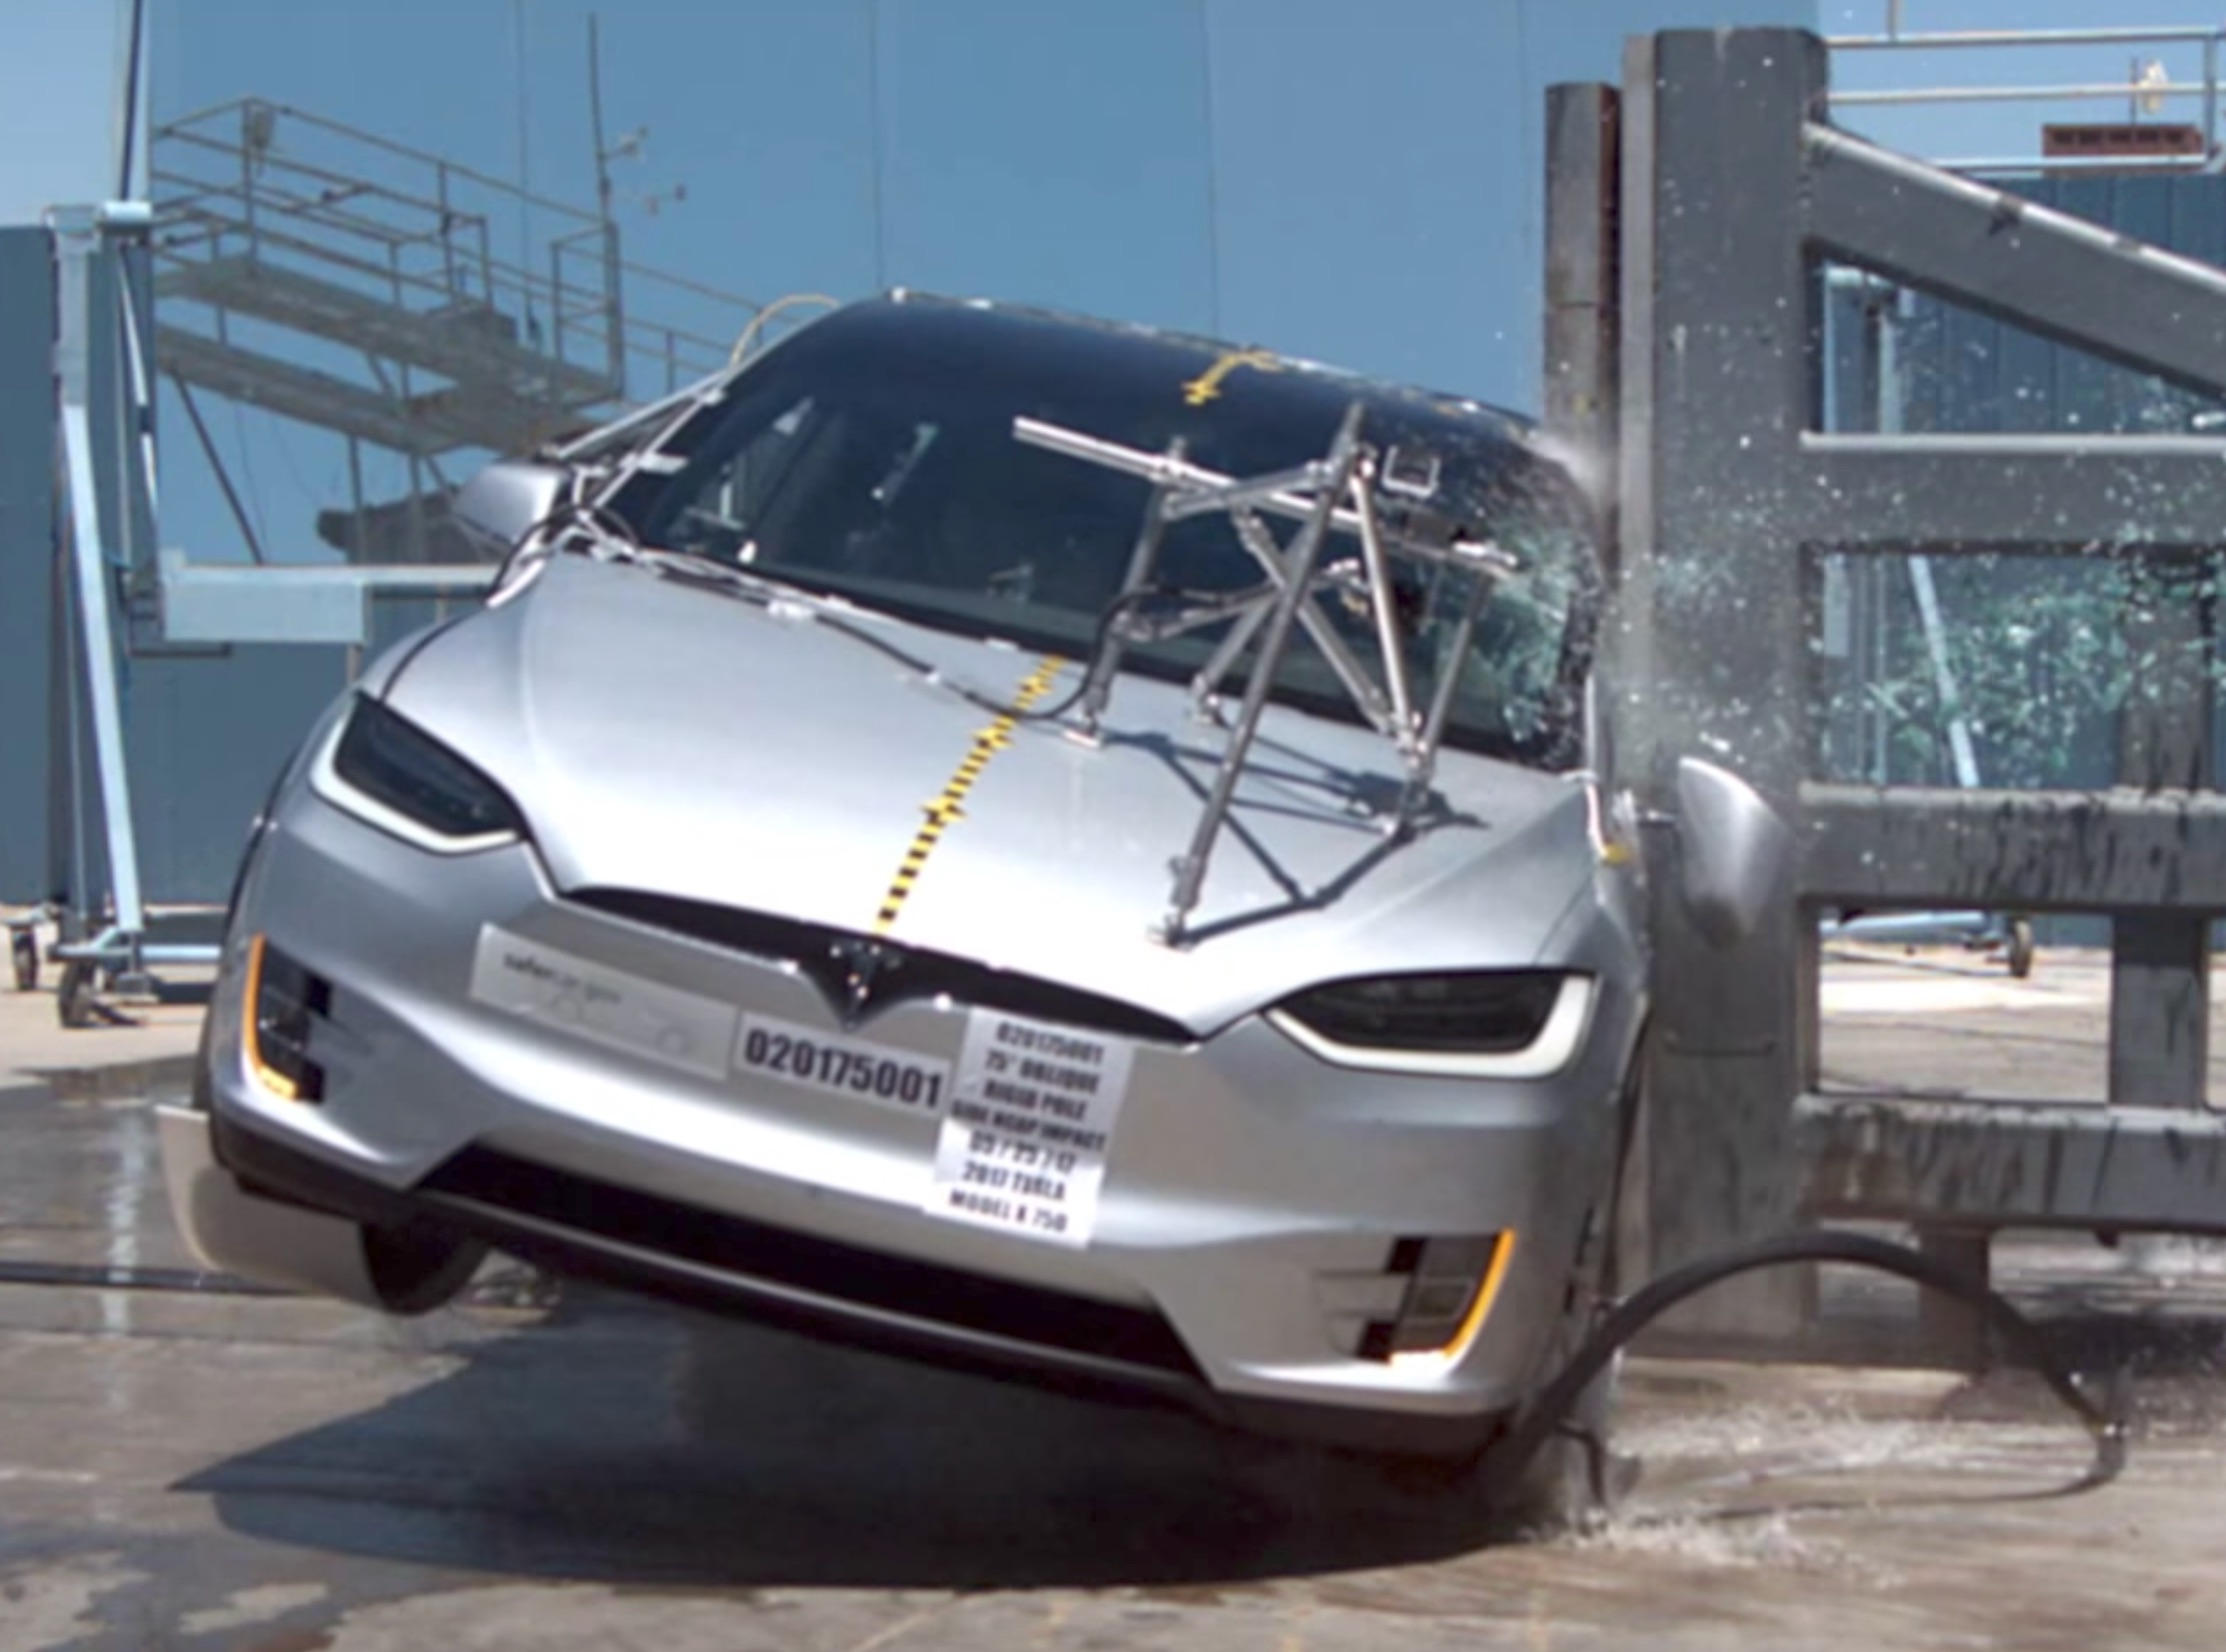 Nhtsa Tesla Model X Crash Test Videos together with Battery Installation And Maintenance besides Tesla Job Opening Design Development Model Y also Wet Cell Vs Agm Batteries Rv Installation Wiring Tips in addition Carfaq9. on solar battery charging